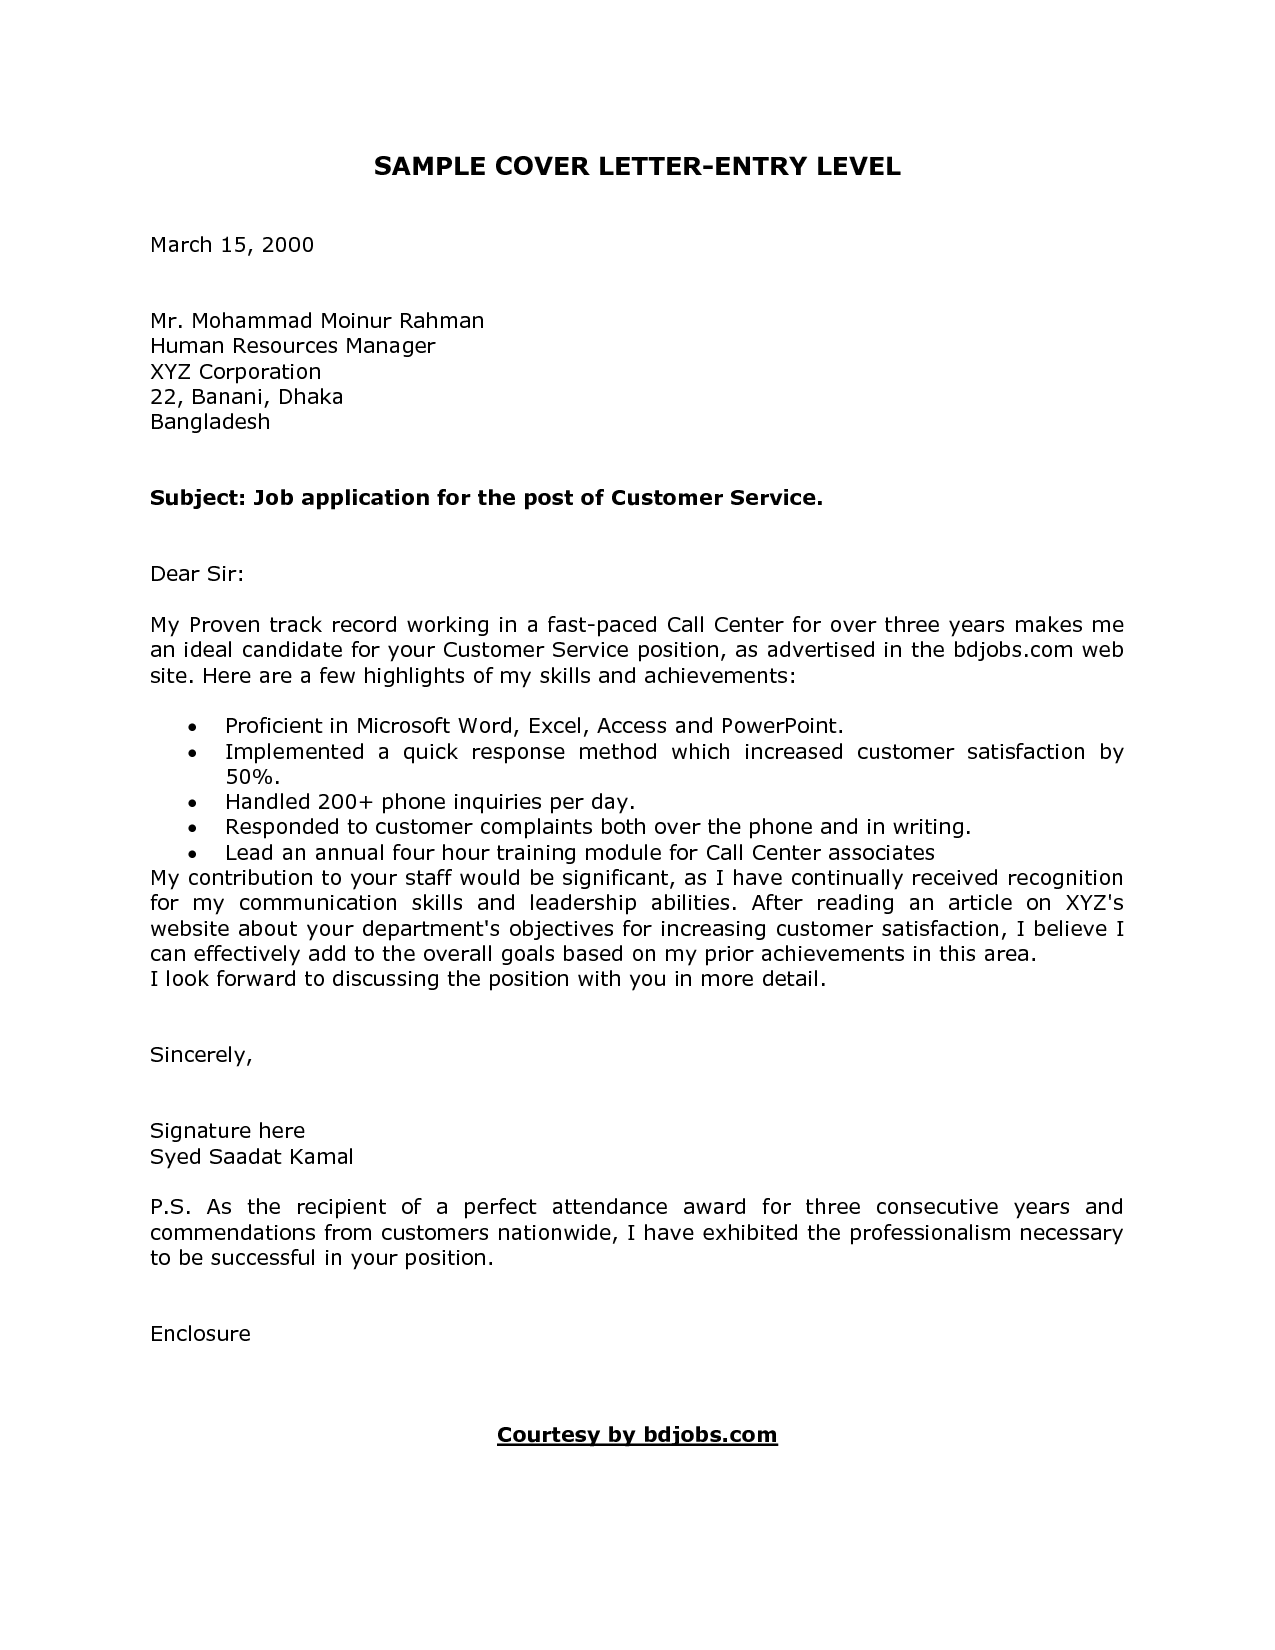 how to write an amazing cover letter cover letters pinterest - Sample Of Best Cover Letter